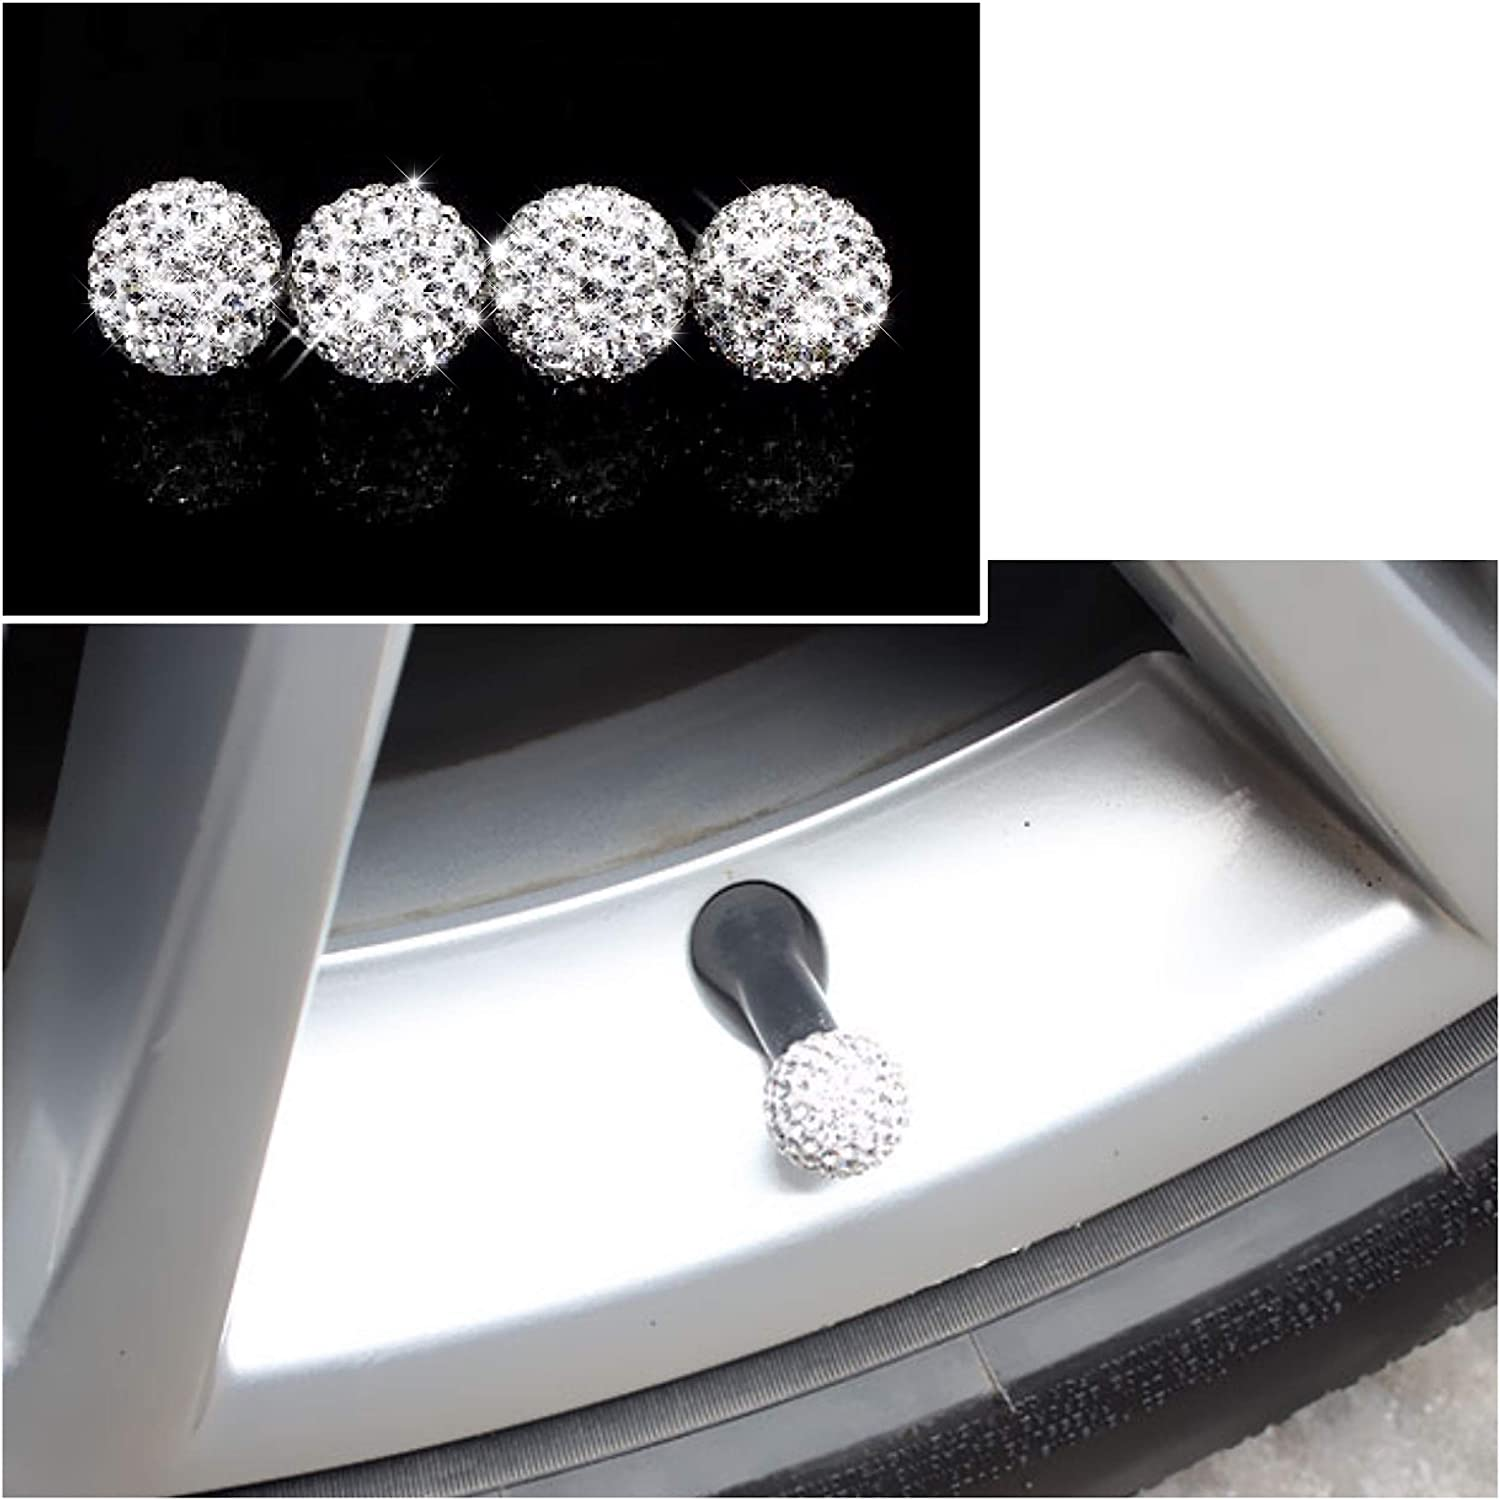 CaserBay Rhinestone Screw Caps /& Rust Resistant Stainless Steel Screws Fasteners for License Plate Frame Paw Print Tire Valve Caps /& Screw Caps【Colorful】